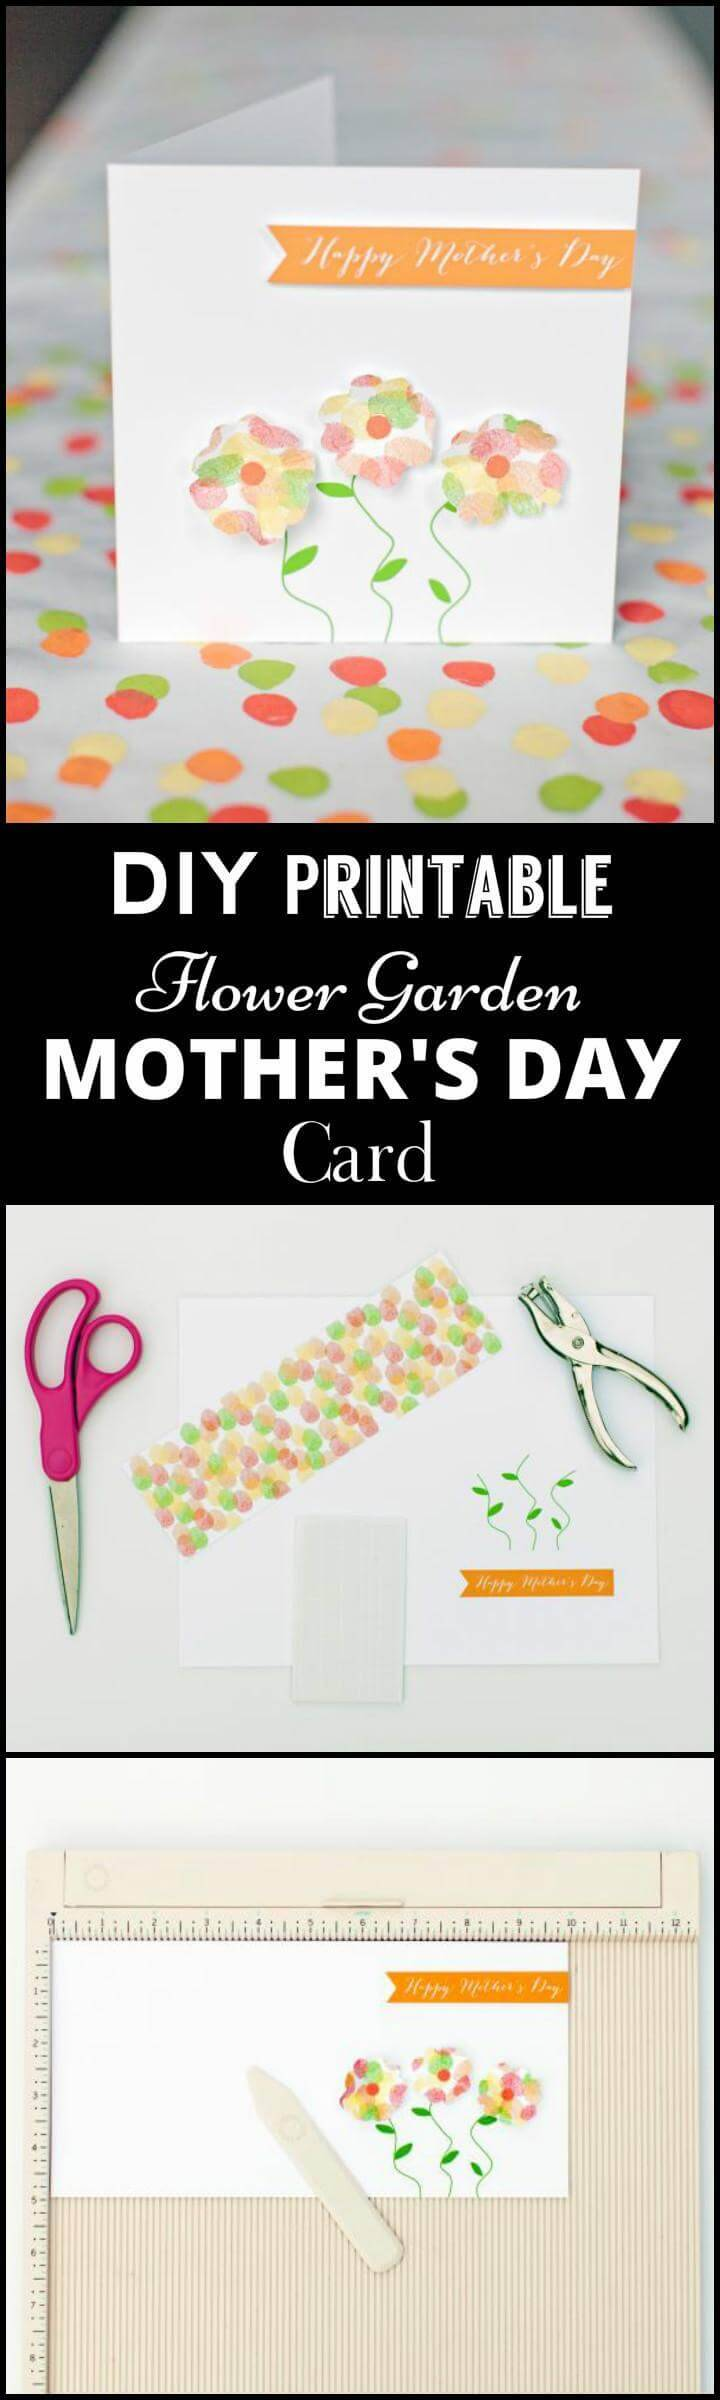 DIY printable flower garden for Mother's Day